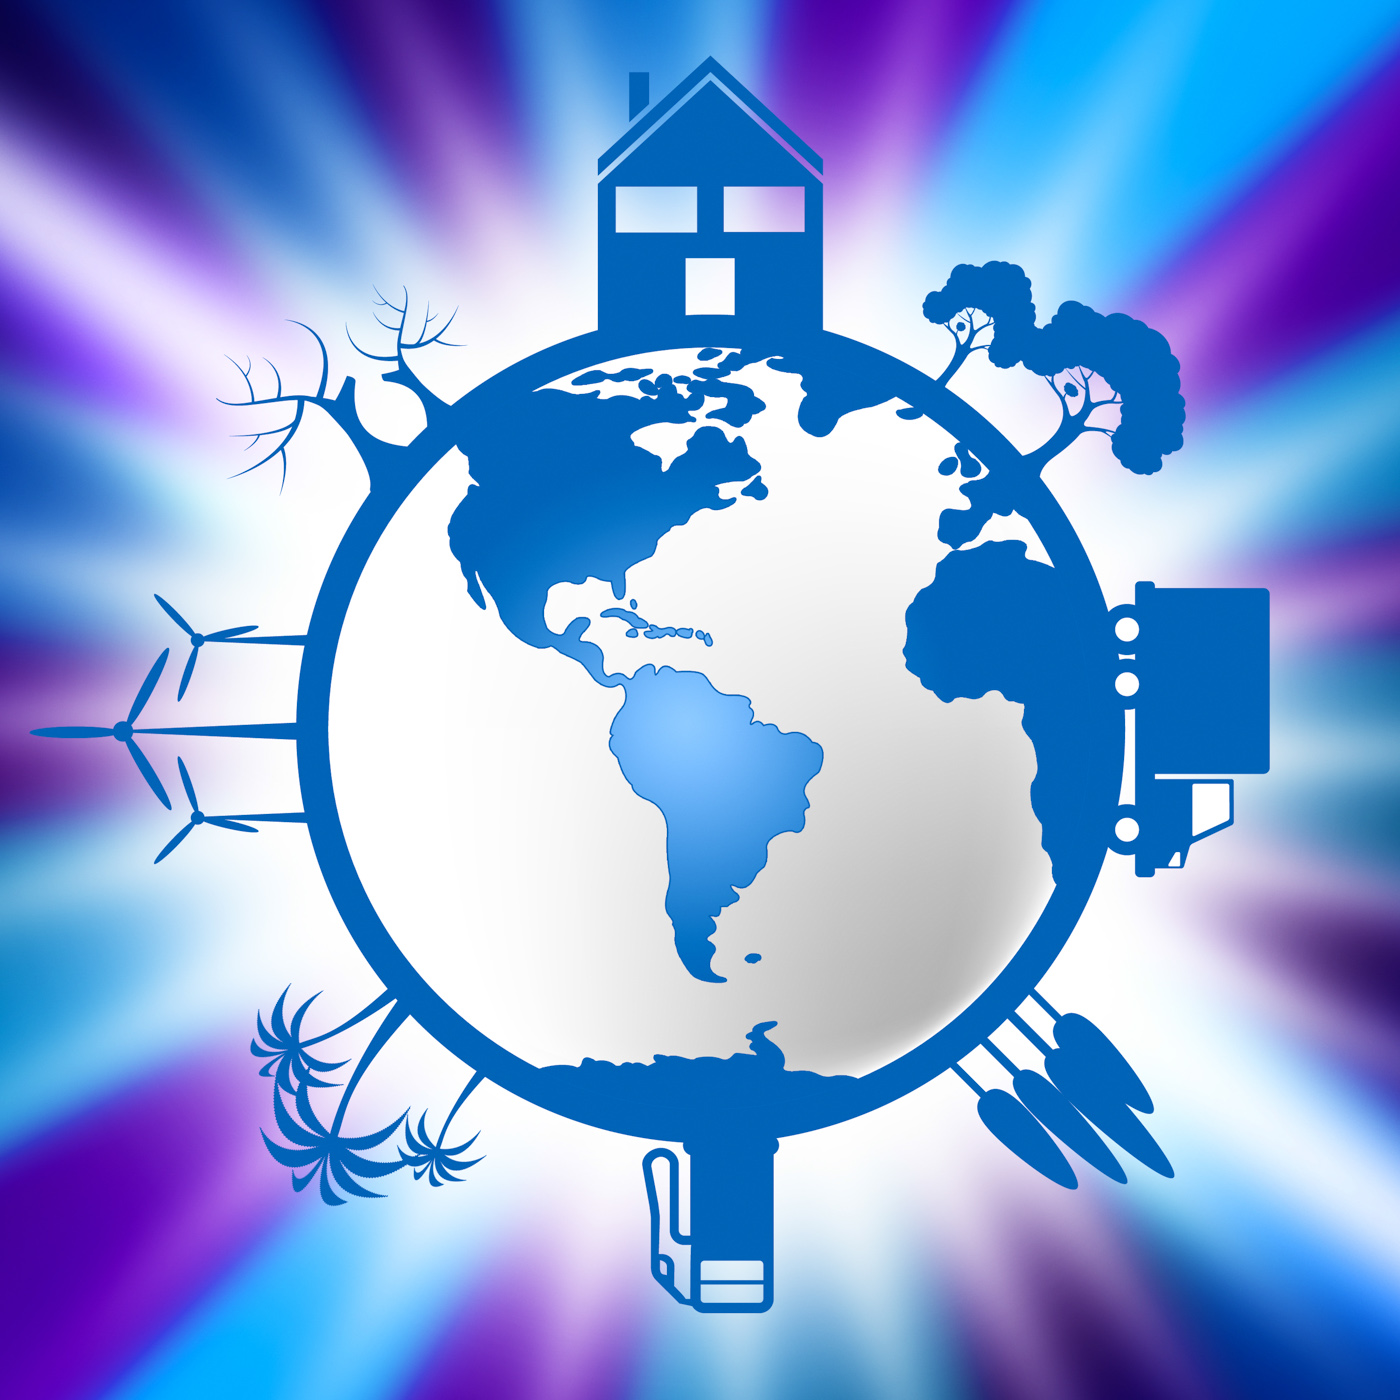 World global indicates eco friendly and conservation photo